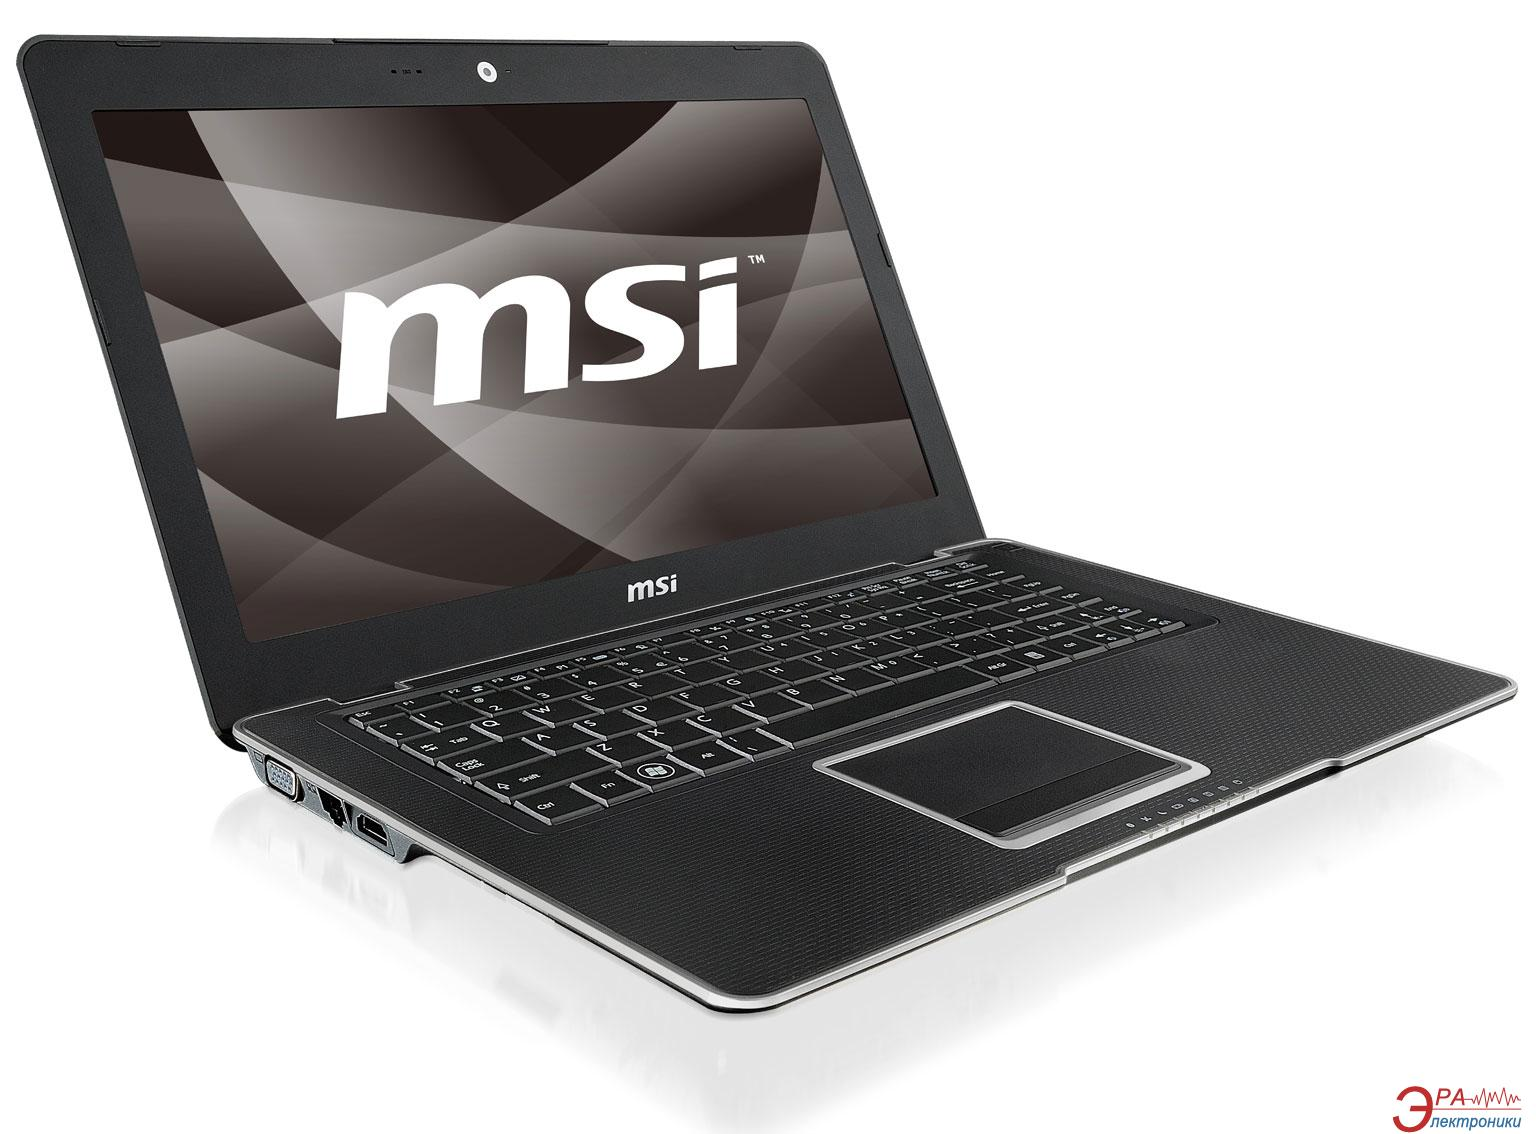 Ноутбук MSI X410 (X410-010UA) Black 14